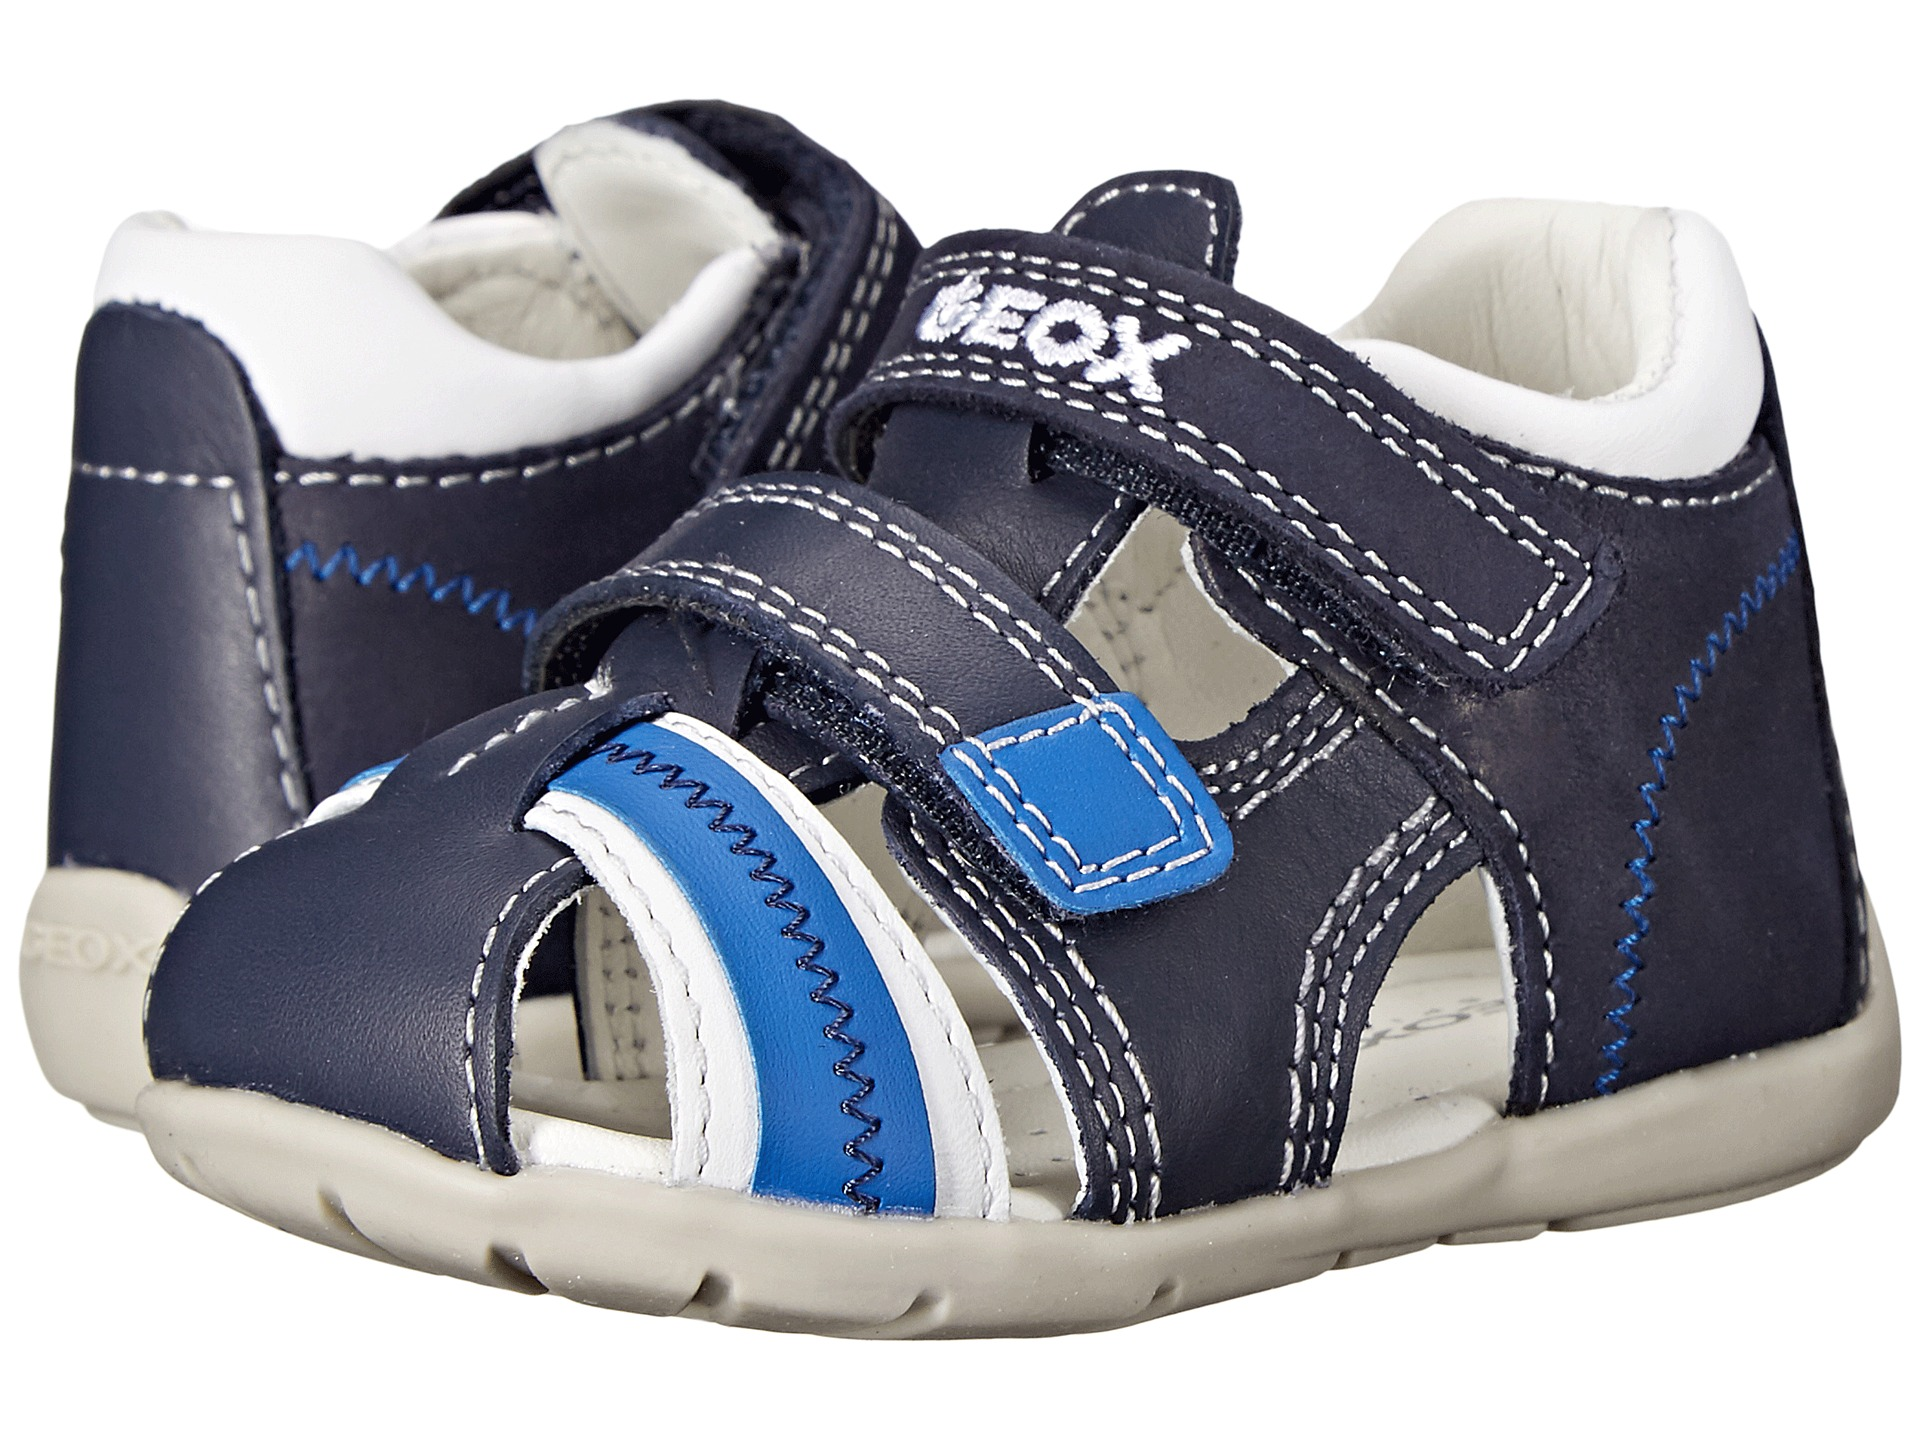 Geox Kids Baby Kaytan Boy 18 (Infant/Toddler) - Zappos.com ...